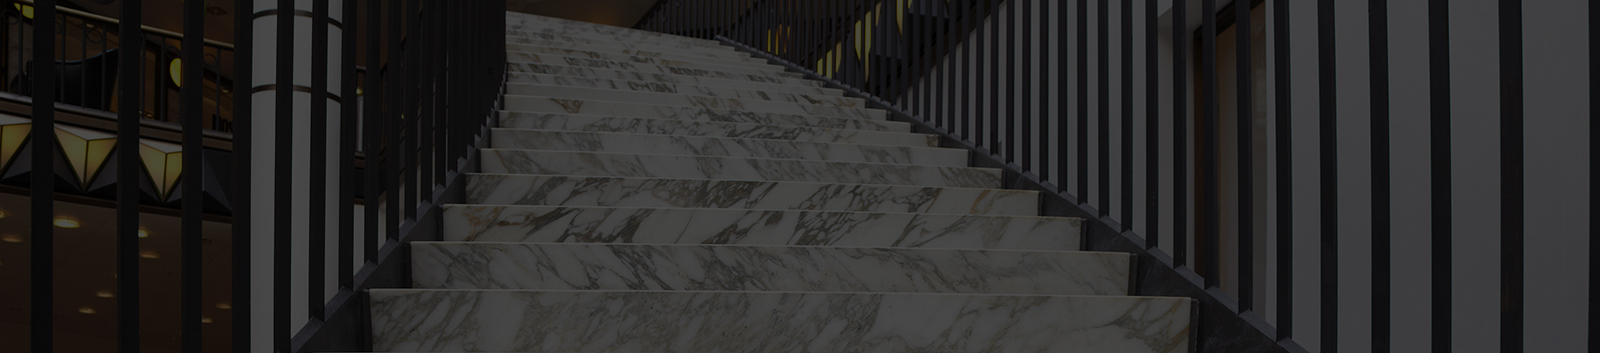 Stone Surfaces